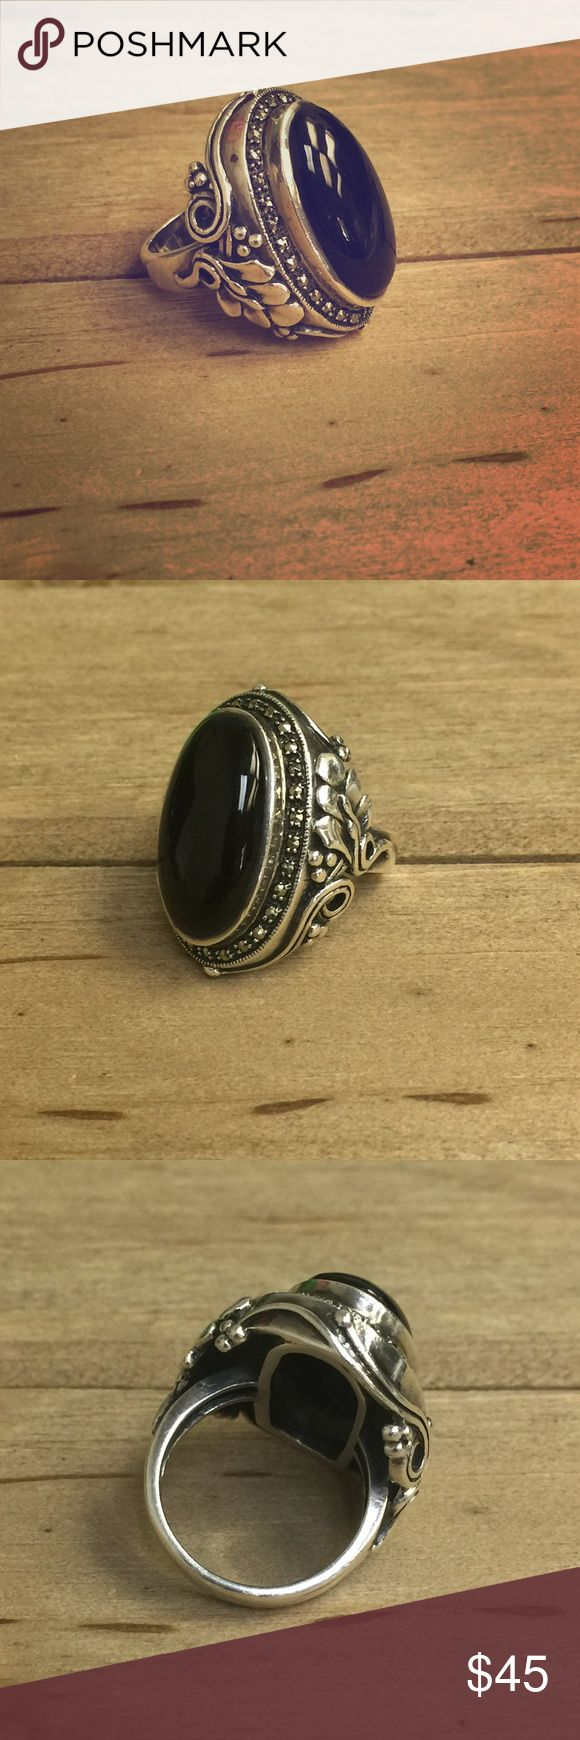 black onyx marcasite sterling chunky ring size 8. all marcasite stones are intact and center onyx stone is in pristine condition. little to no wear on band. great floral detail on the side. large but very comfortable ring. Jewelry Rings